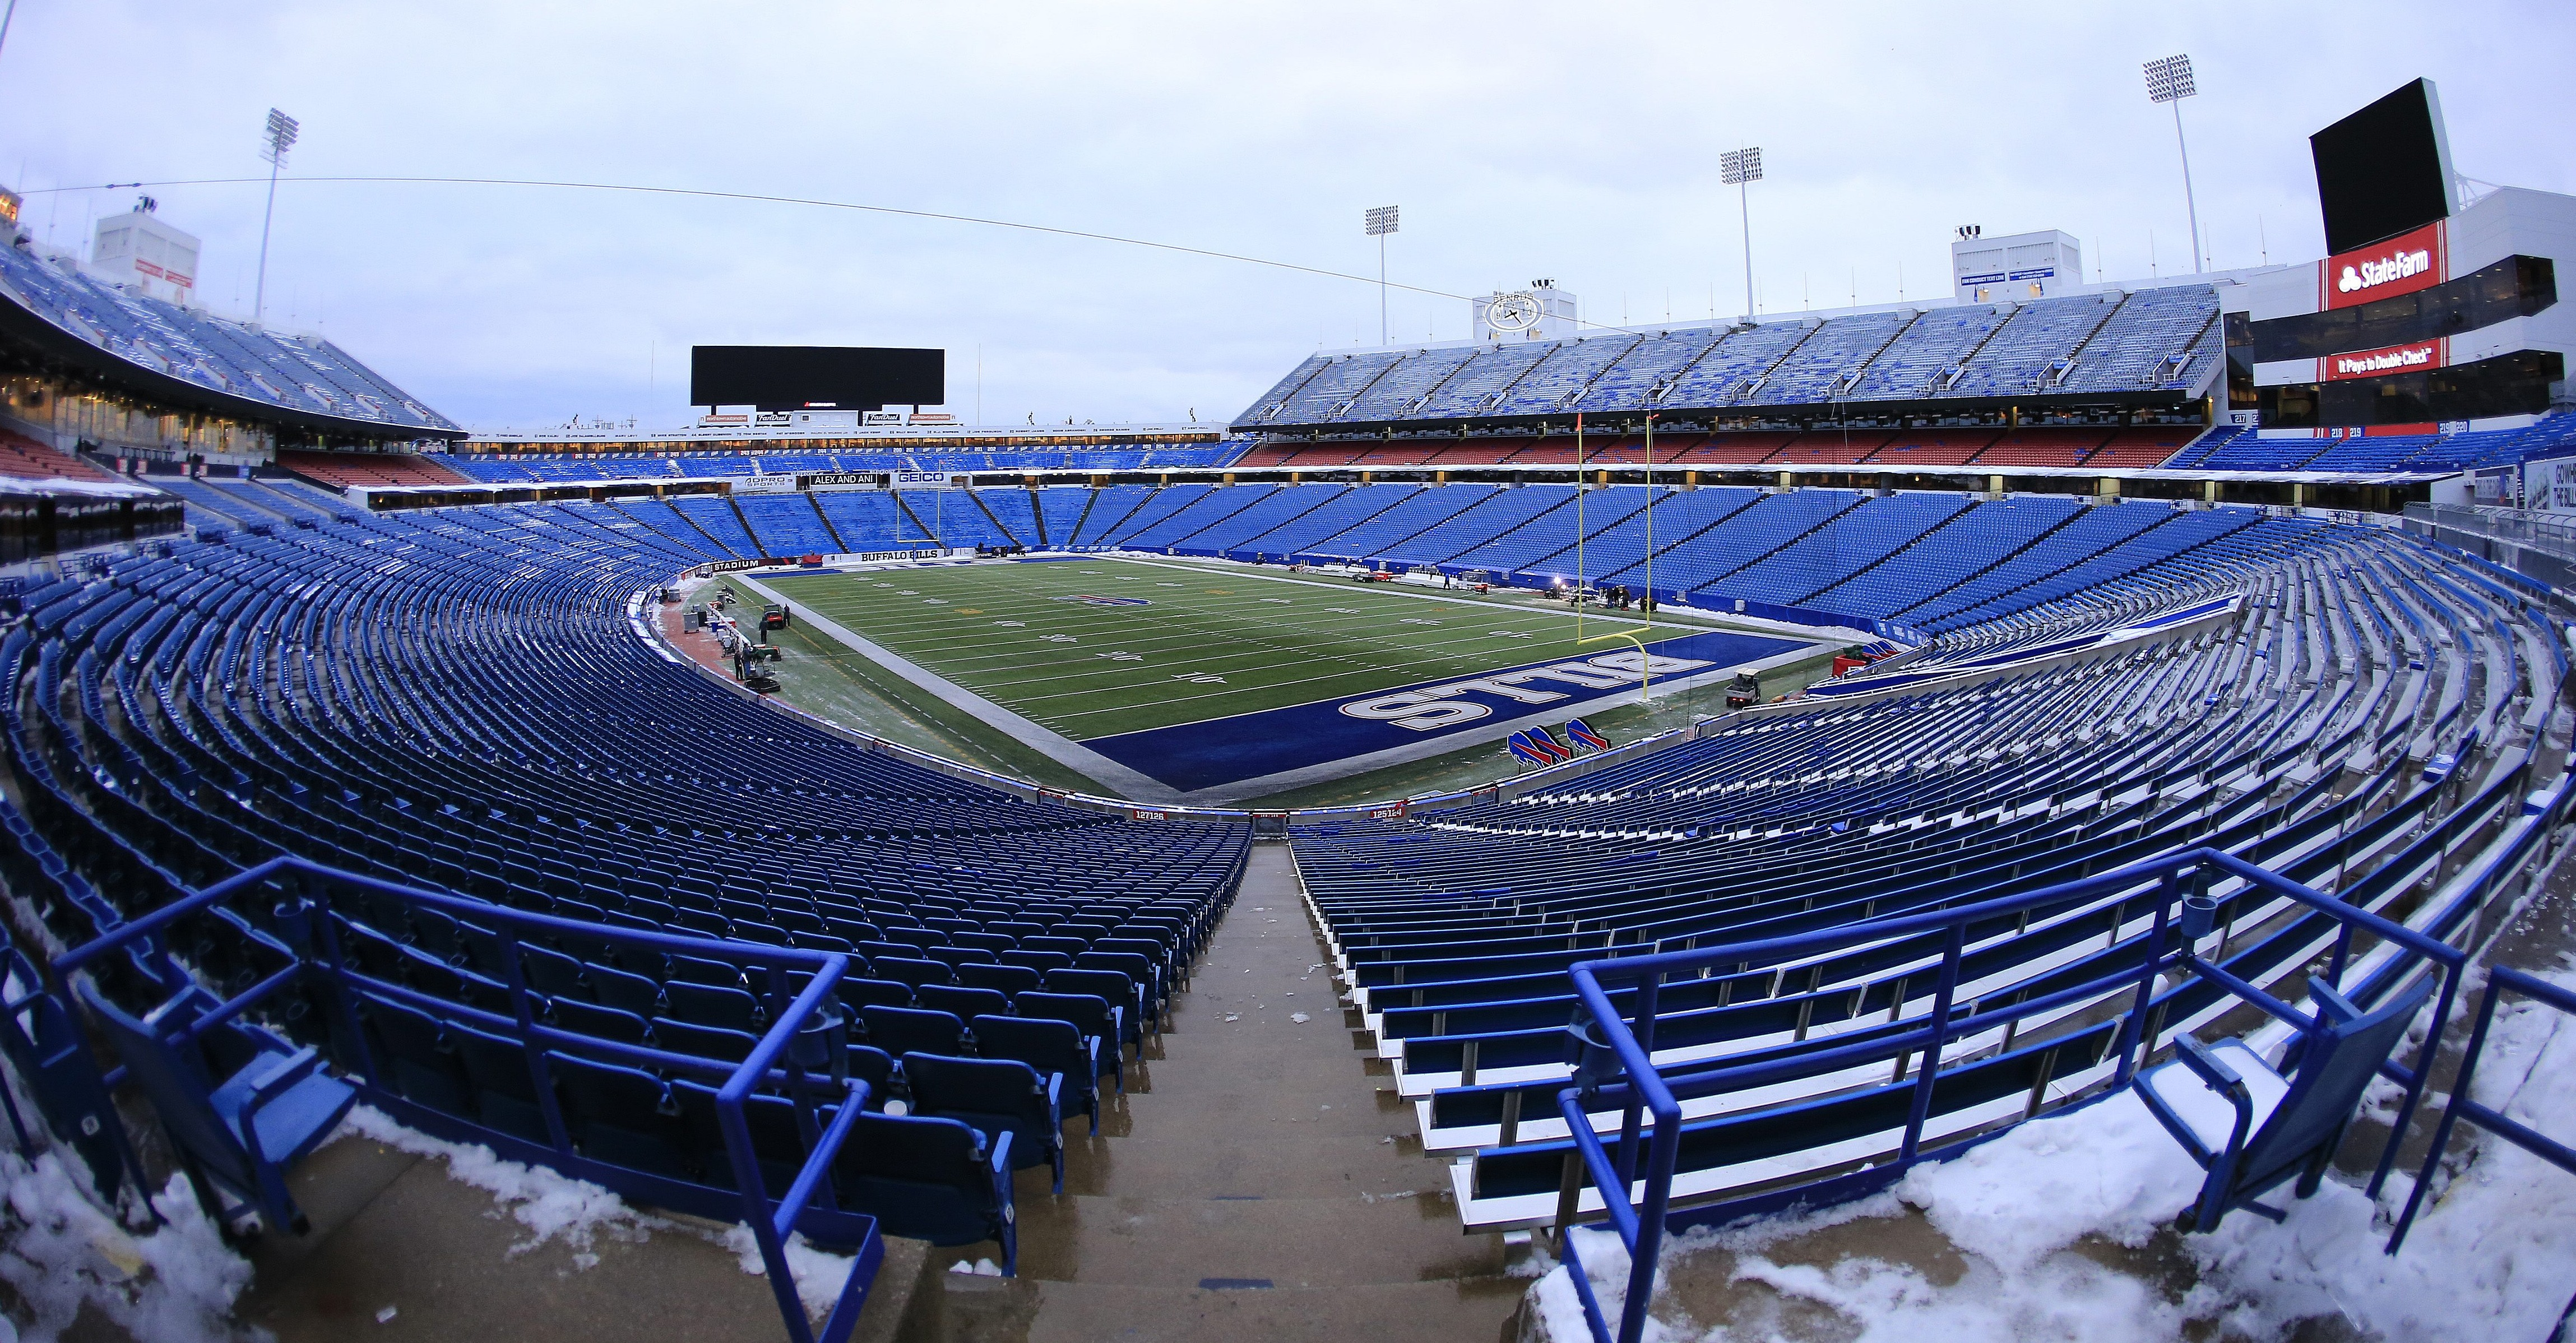 The Bills appear to be happy with their current home in Orchard Park. (Harry Scull Jr./News file photo)